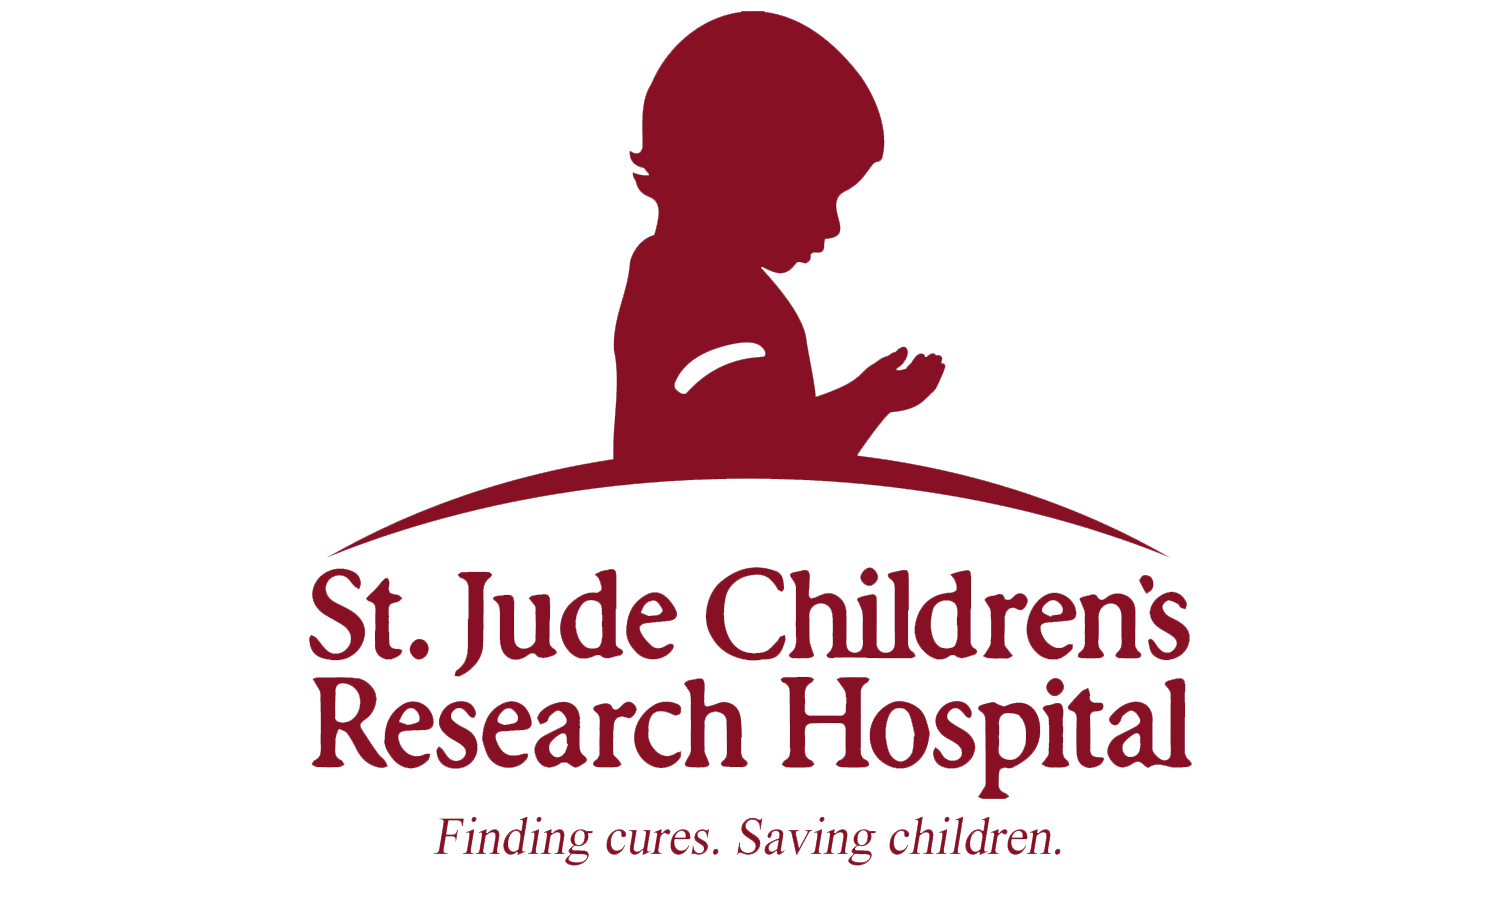 St Jude Logo St Jude Symbol Meaning History And Evolution